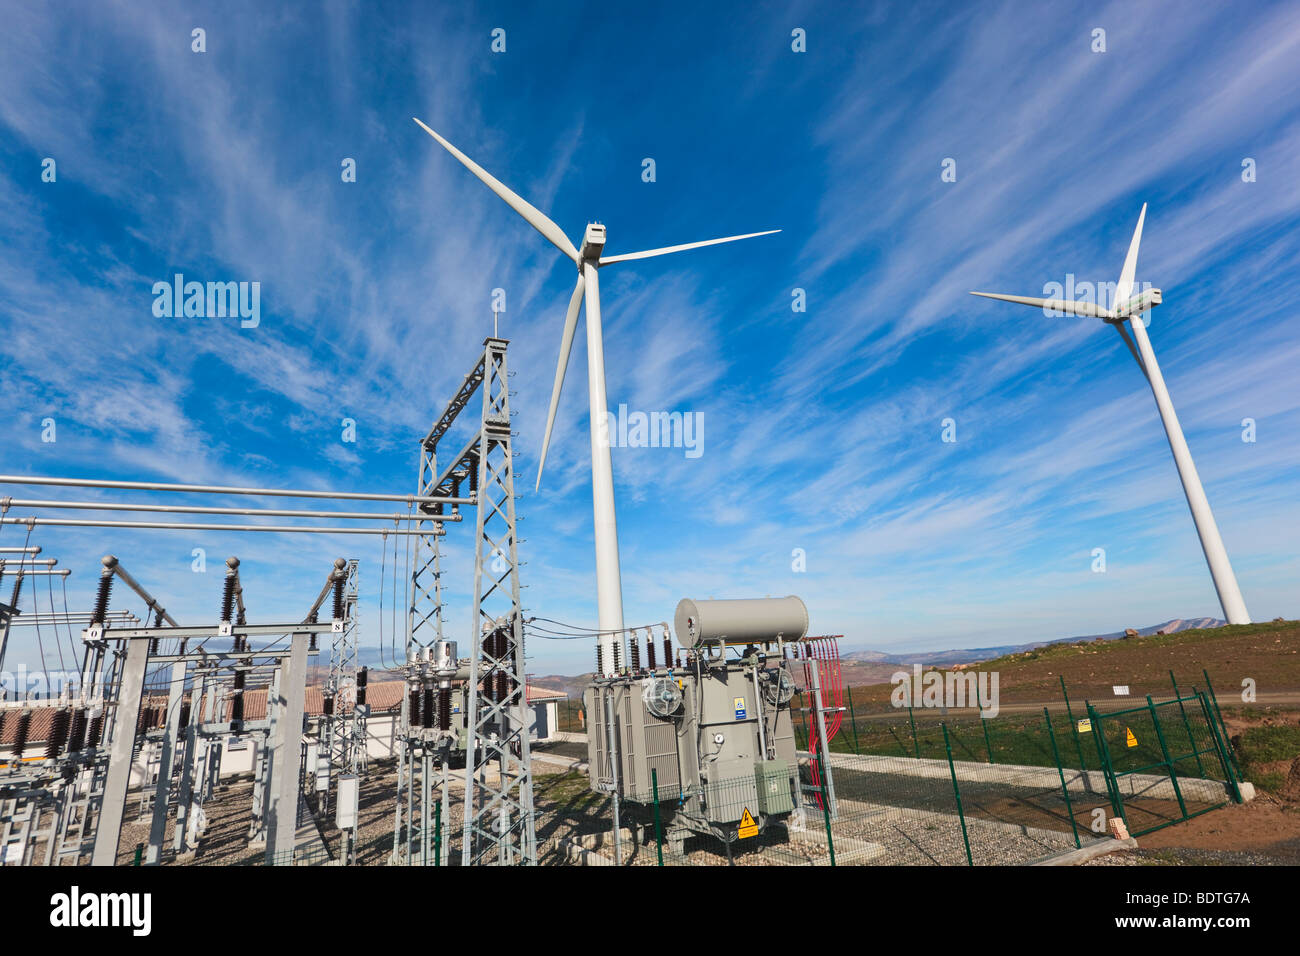 Wind energy centre near Ardales, Malaga Province, Spain. Windmills and transformers. - Stock Image